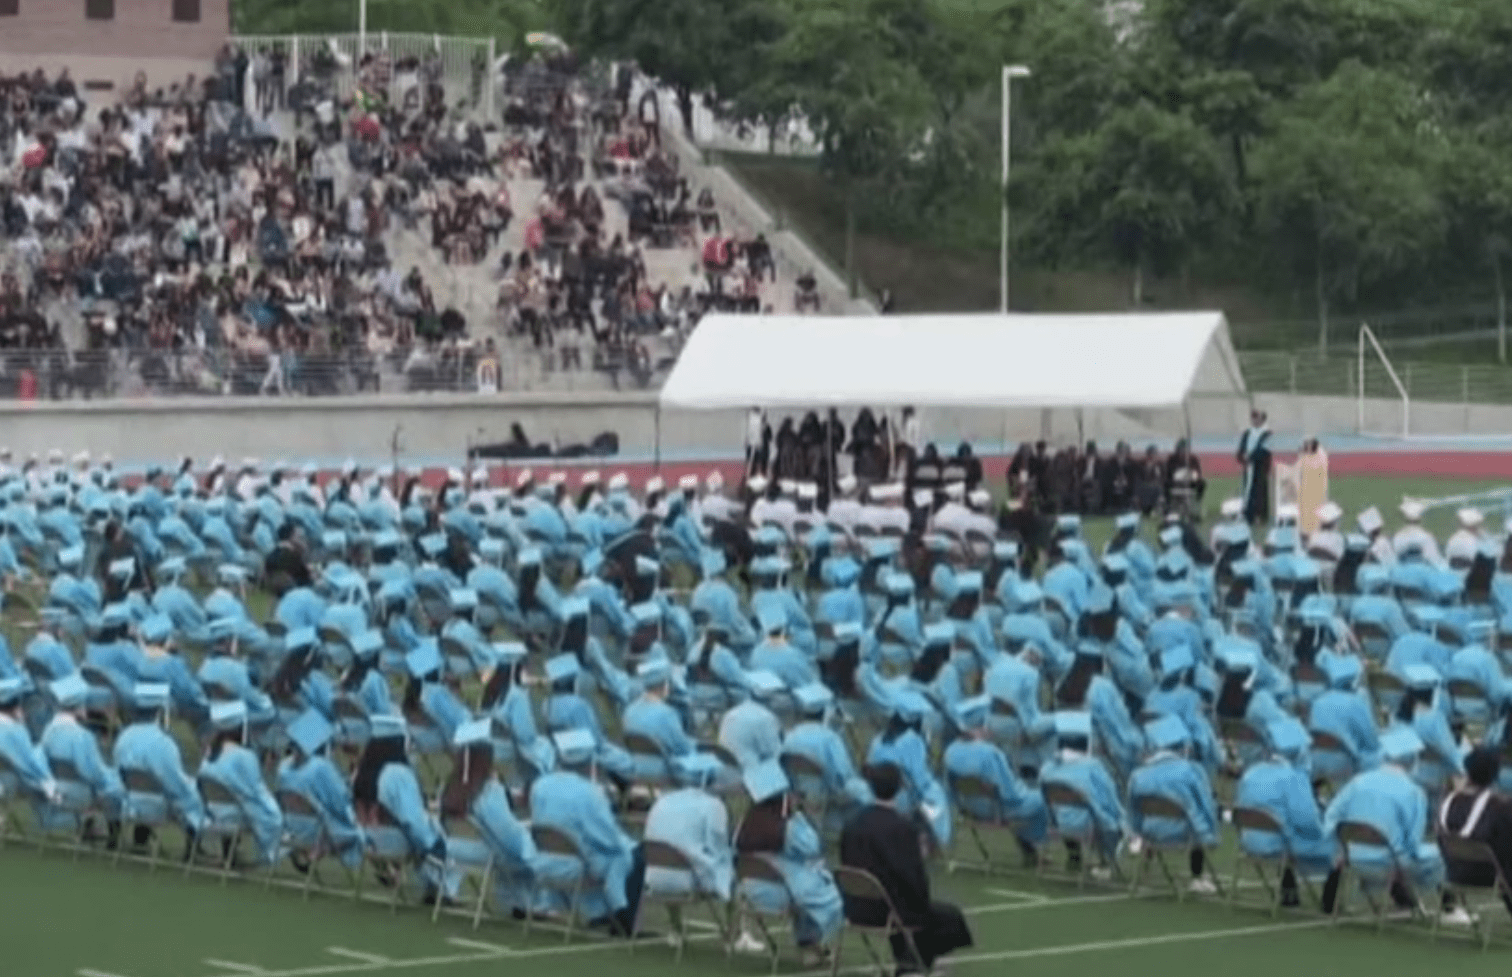 Valedictorian's Graduation Speech BLASTS 'unavailable' Staff, Intoxicated Teacher and Inapt Administrators